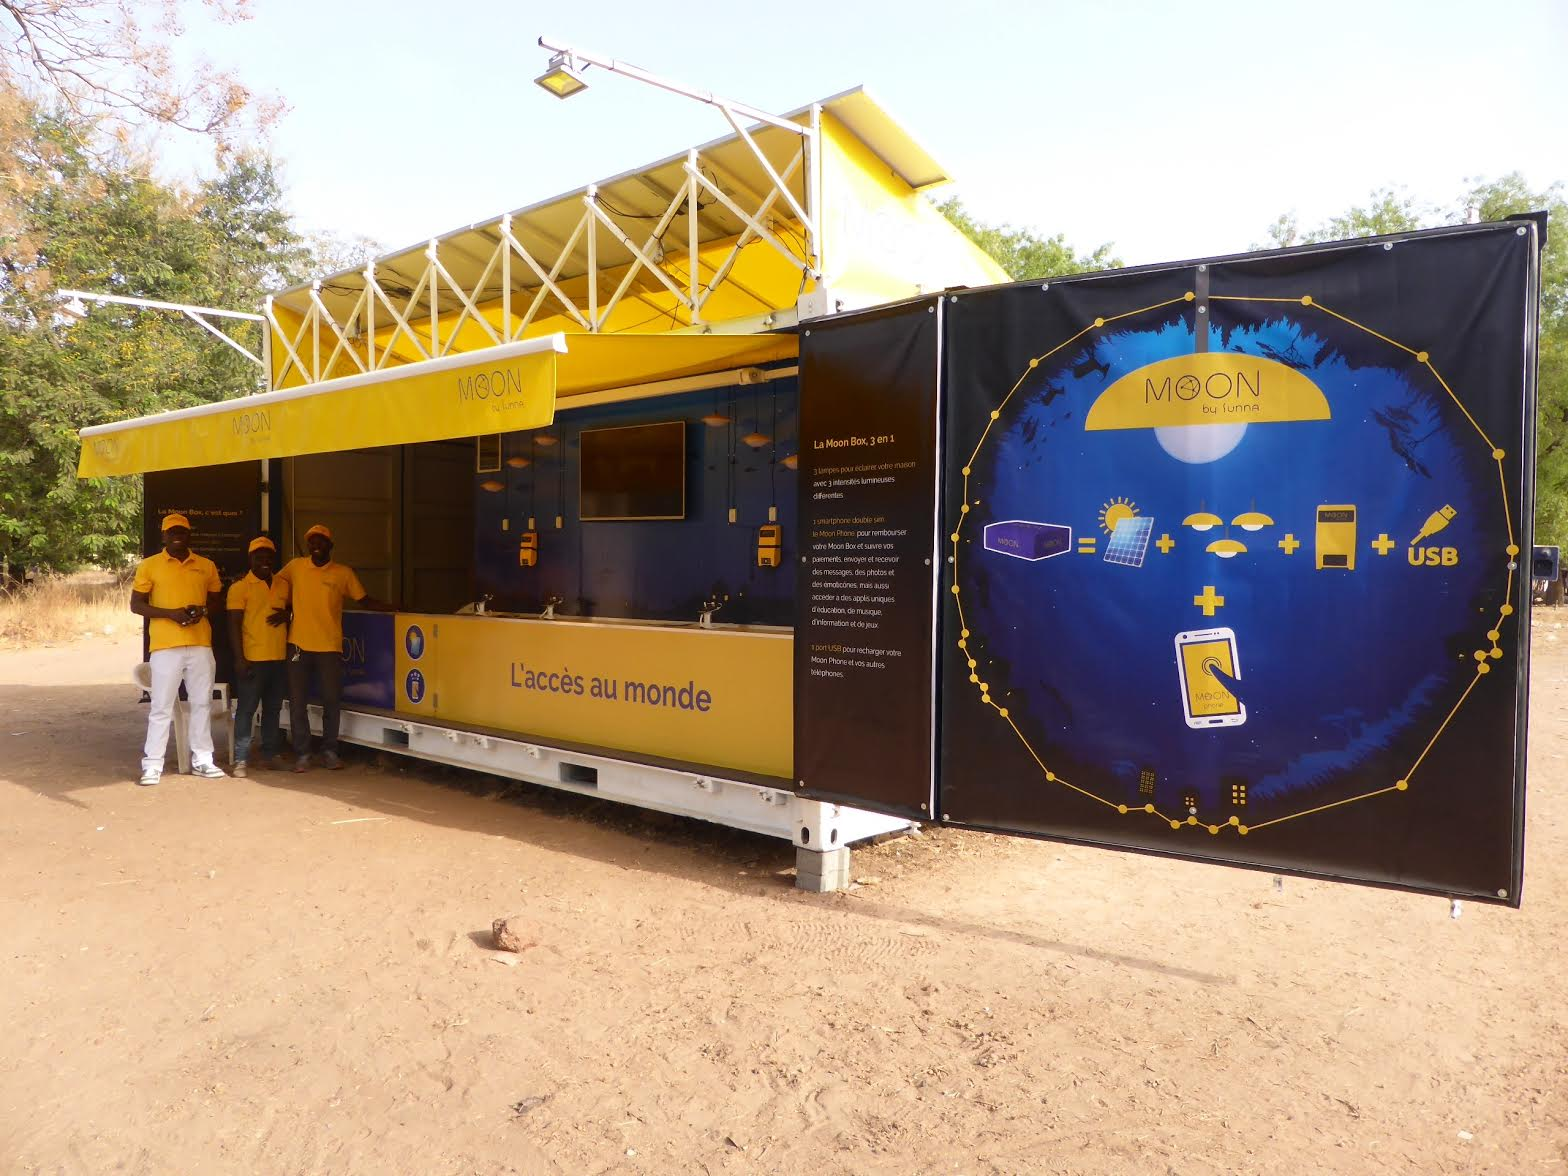 Sunna Design innovates for African villages with an unprecedented offer combining access to energy and digital content